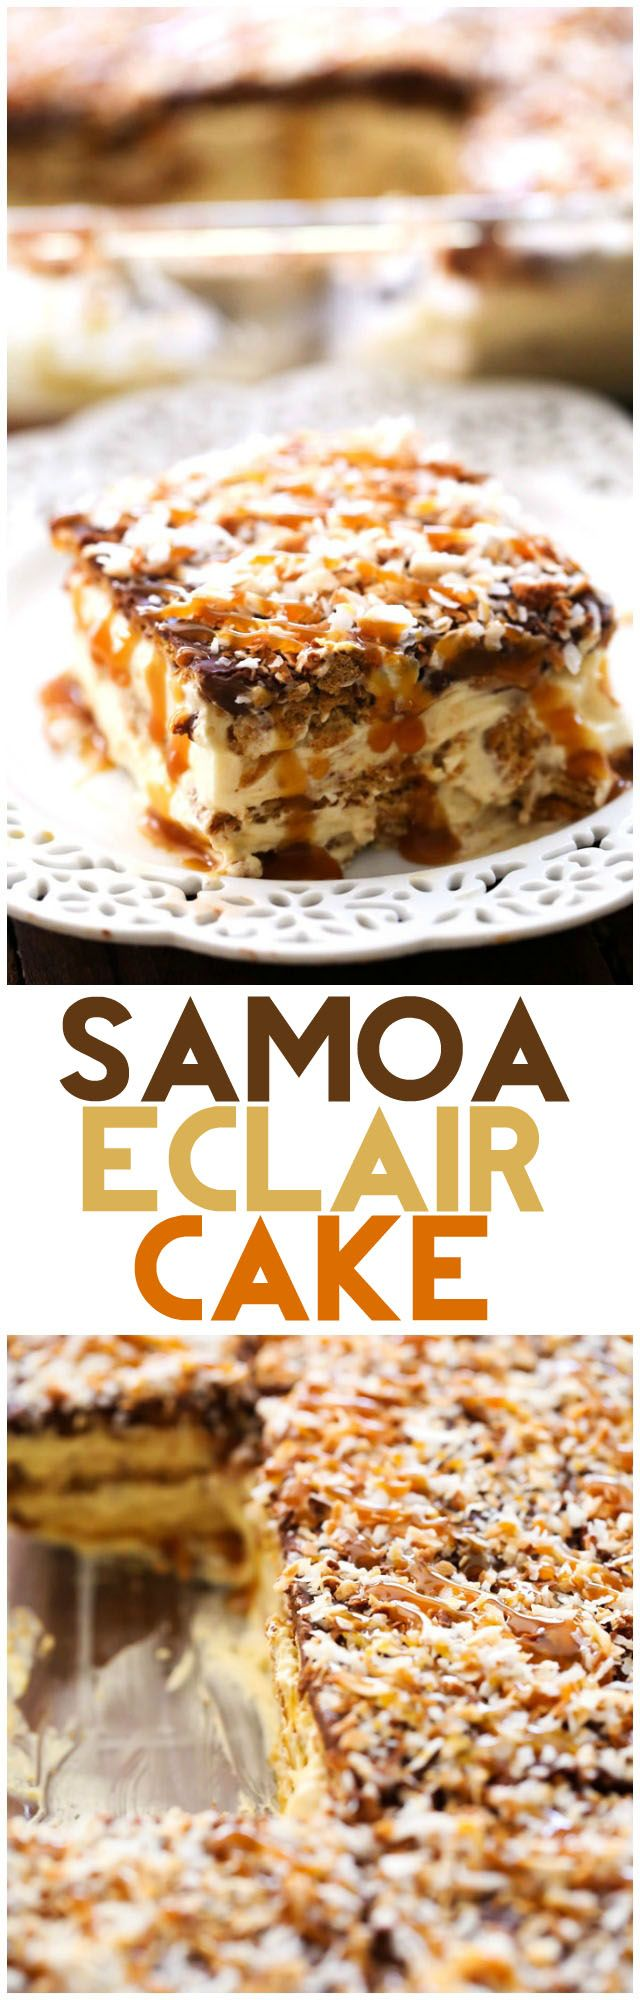 No Bake Samoa Eclair Cake - This dessert has layers of creamy, chocolate caramel graham cracker heaven! One of the BEST desserts I have ever had!